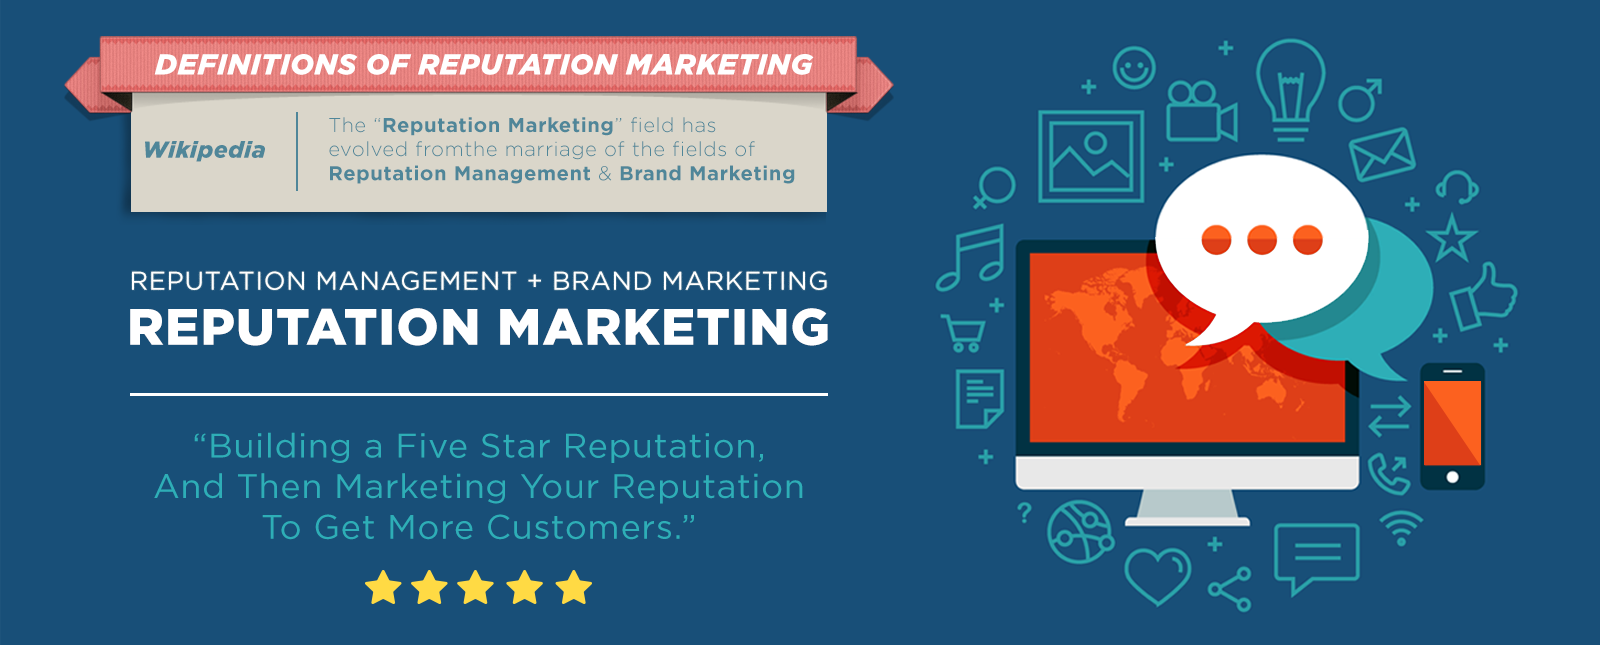 Reputation Marketing